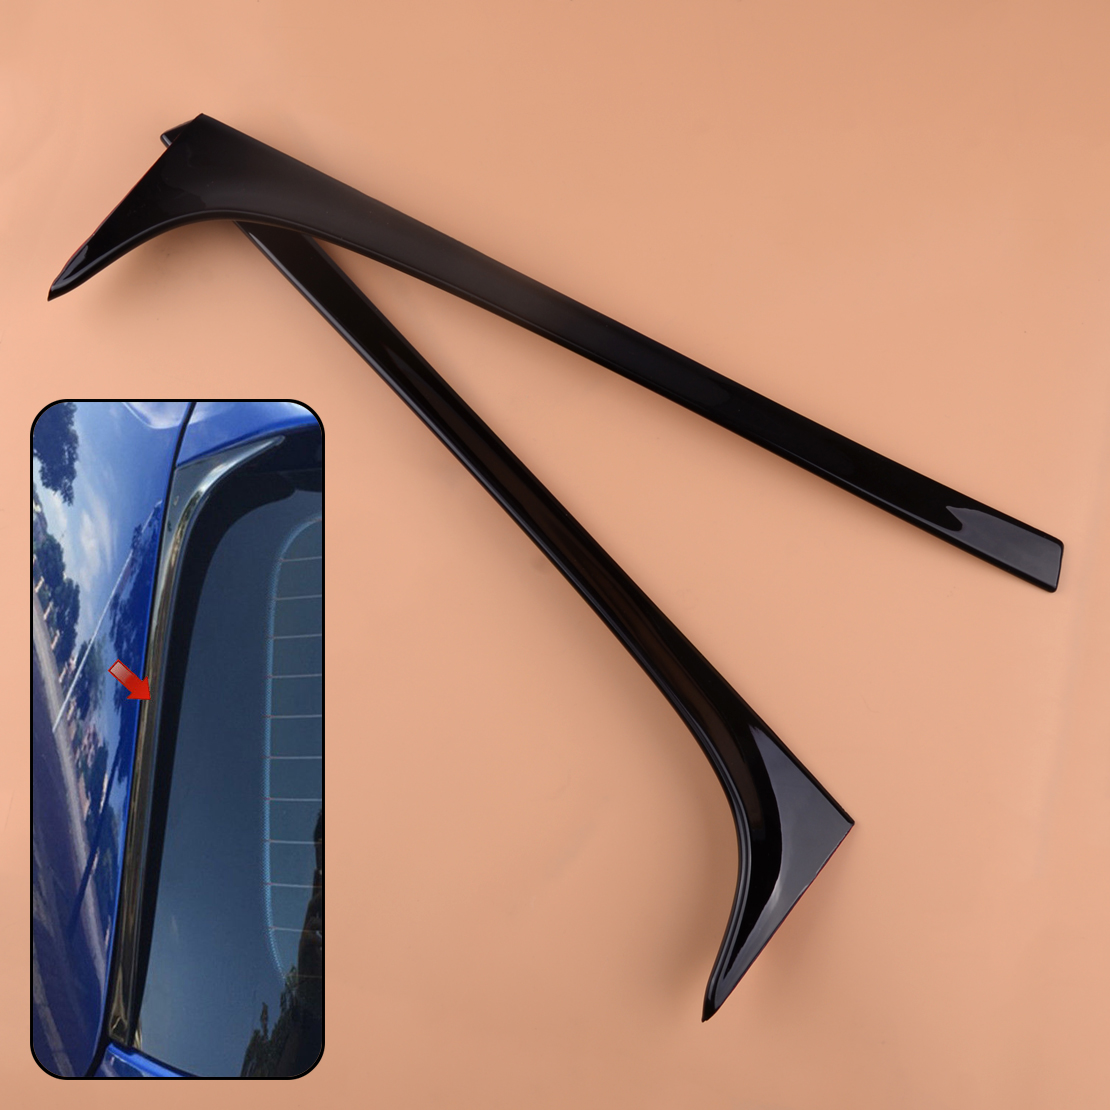 CITALL 2Pcs Black Car Rear Window Side Spoiler Wing Fit For VW <font><b>GOLF</b></font> MK7 MK7.5 <font><b>R</b></font> GTE GTD 2013 2014 2015 2016 2017 <font><b>2018</b></font> image